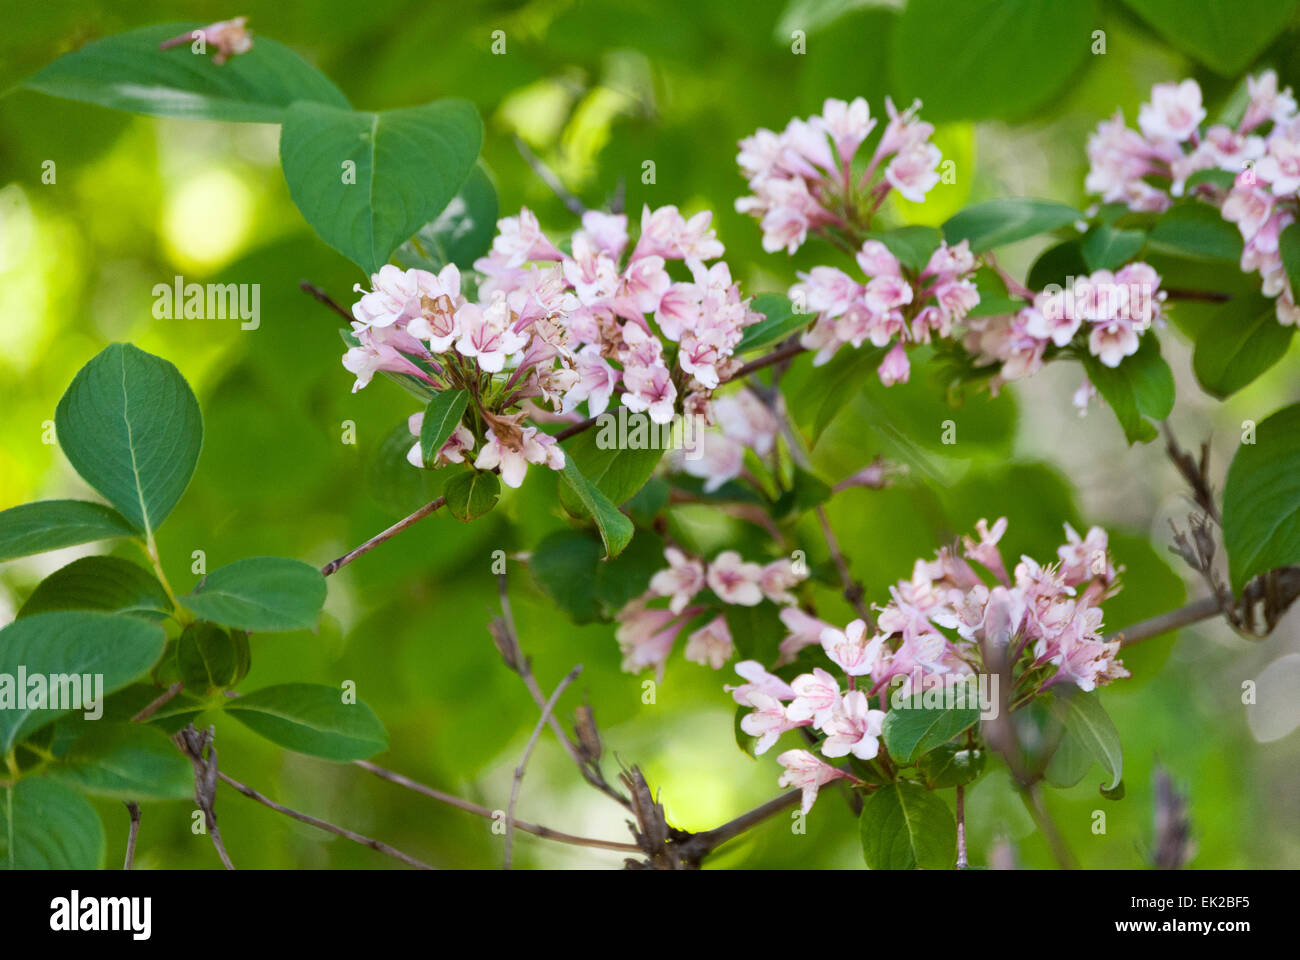 Close Up Of Small Pink And White Flowers With Green Leaves Stock